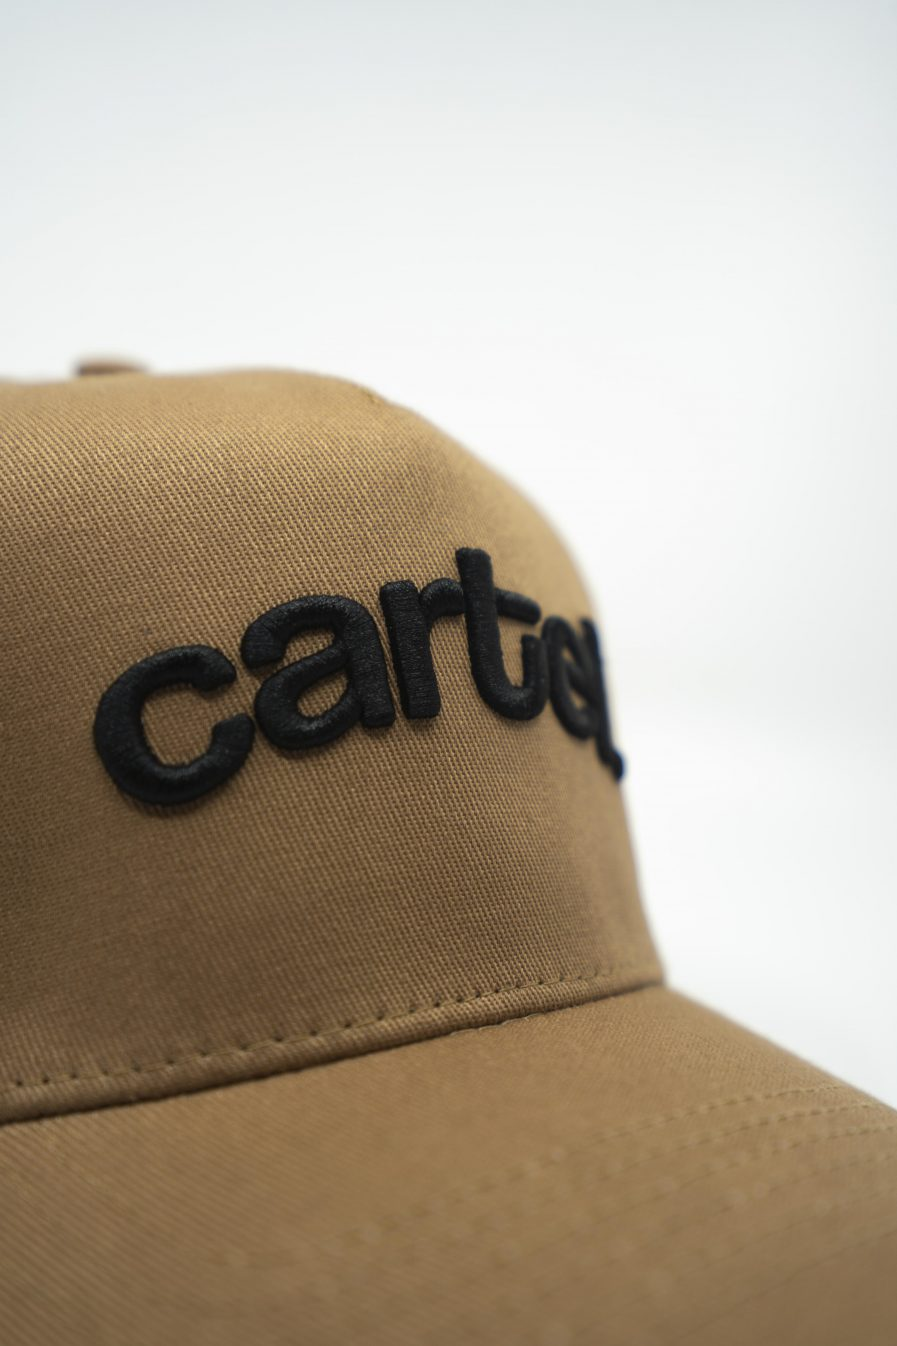 Snapback - Tan (Black text) - Cartel Store